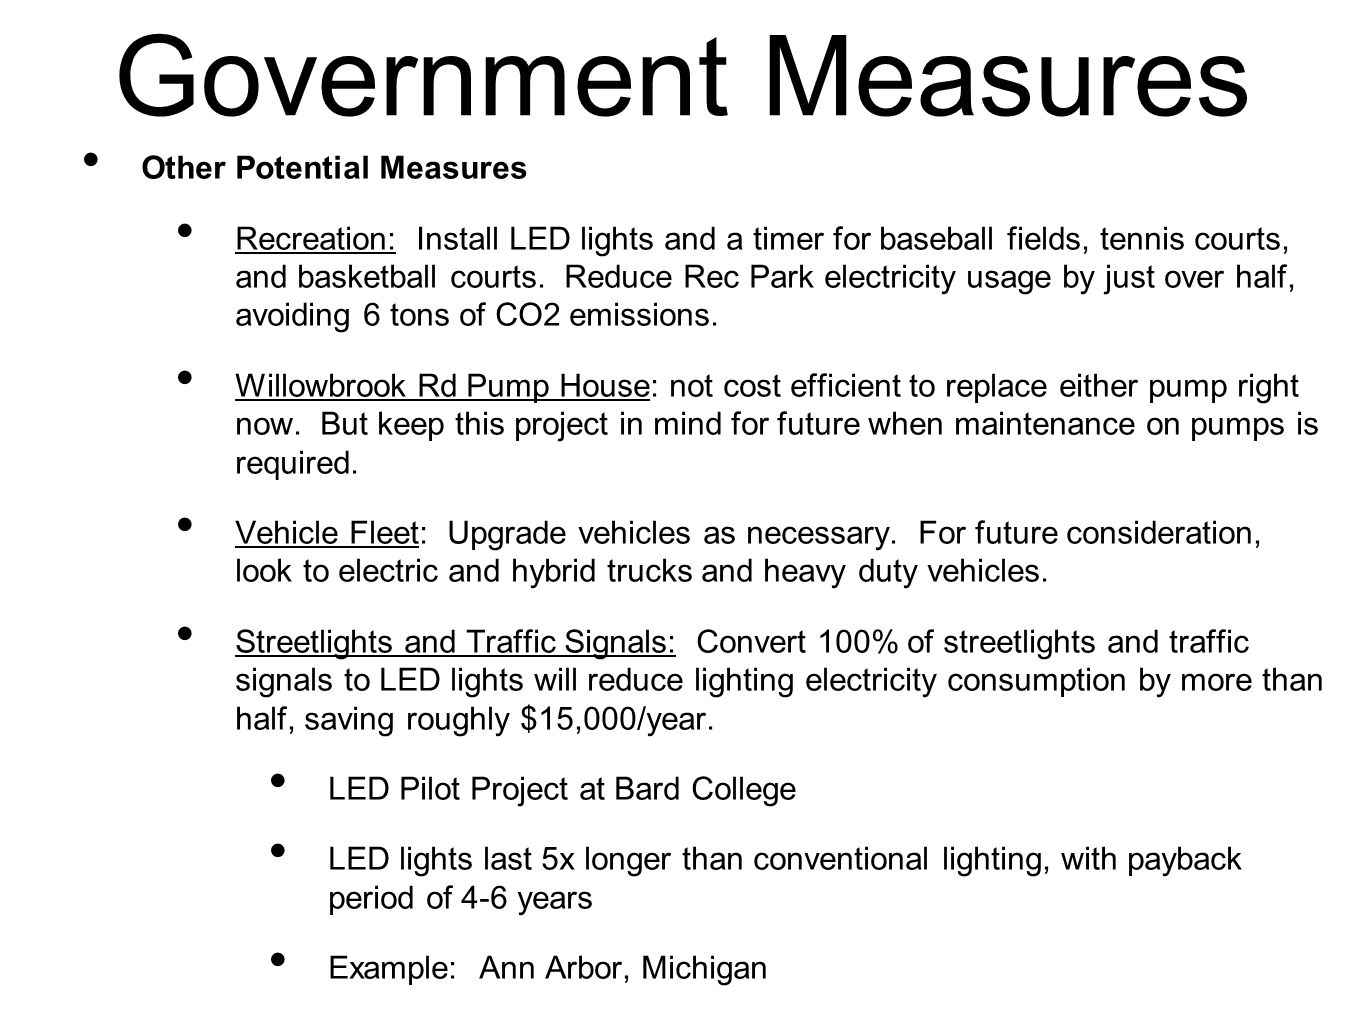 Government Measures Other Potential Measures Recreation: Install LED lights and a timer for baseball fields, tennis courts, and basketball courts.